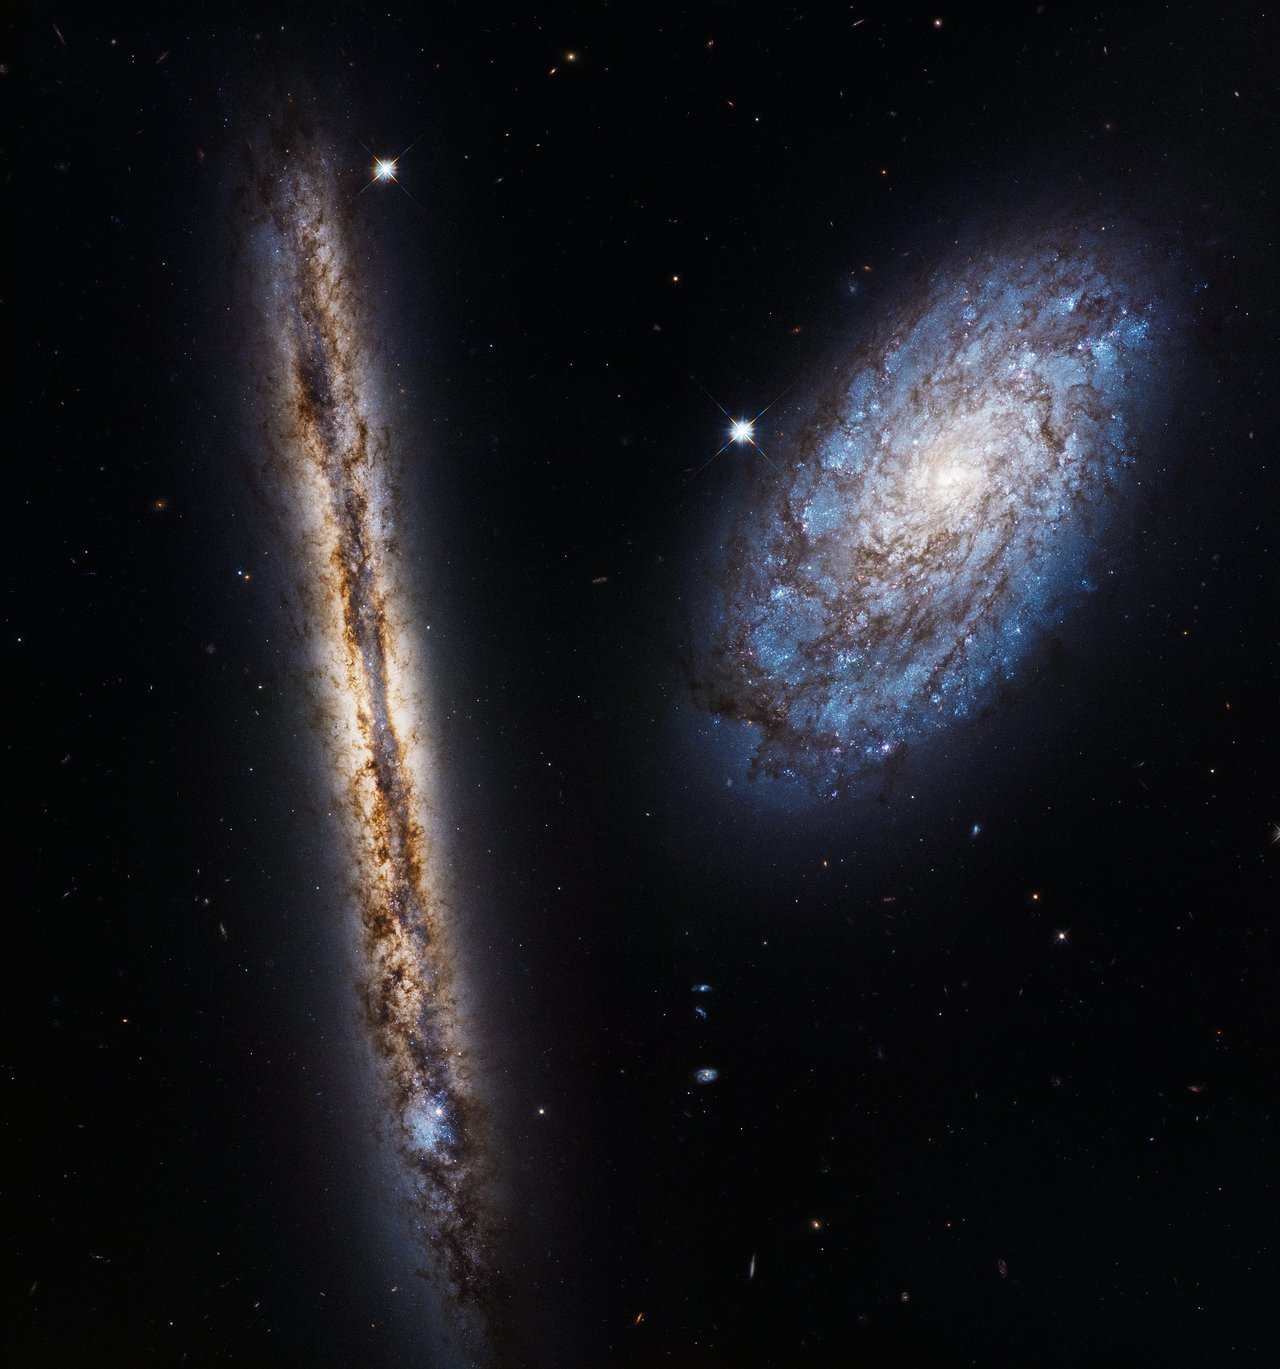 Galaxies snuggle up in Hubble 27th anniversary image